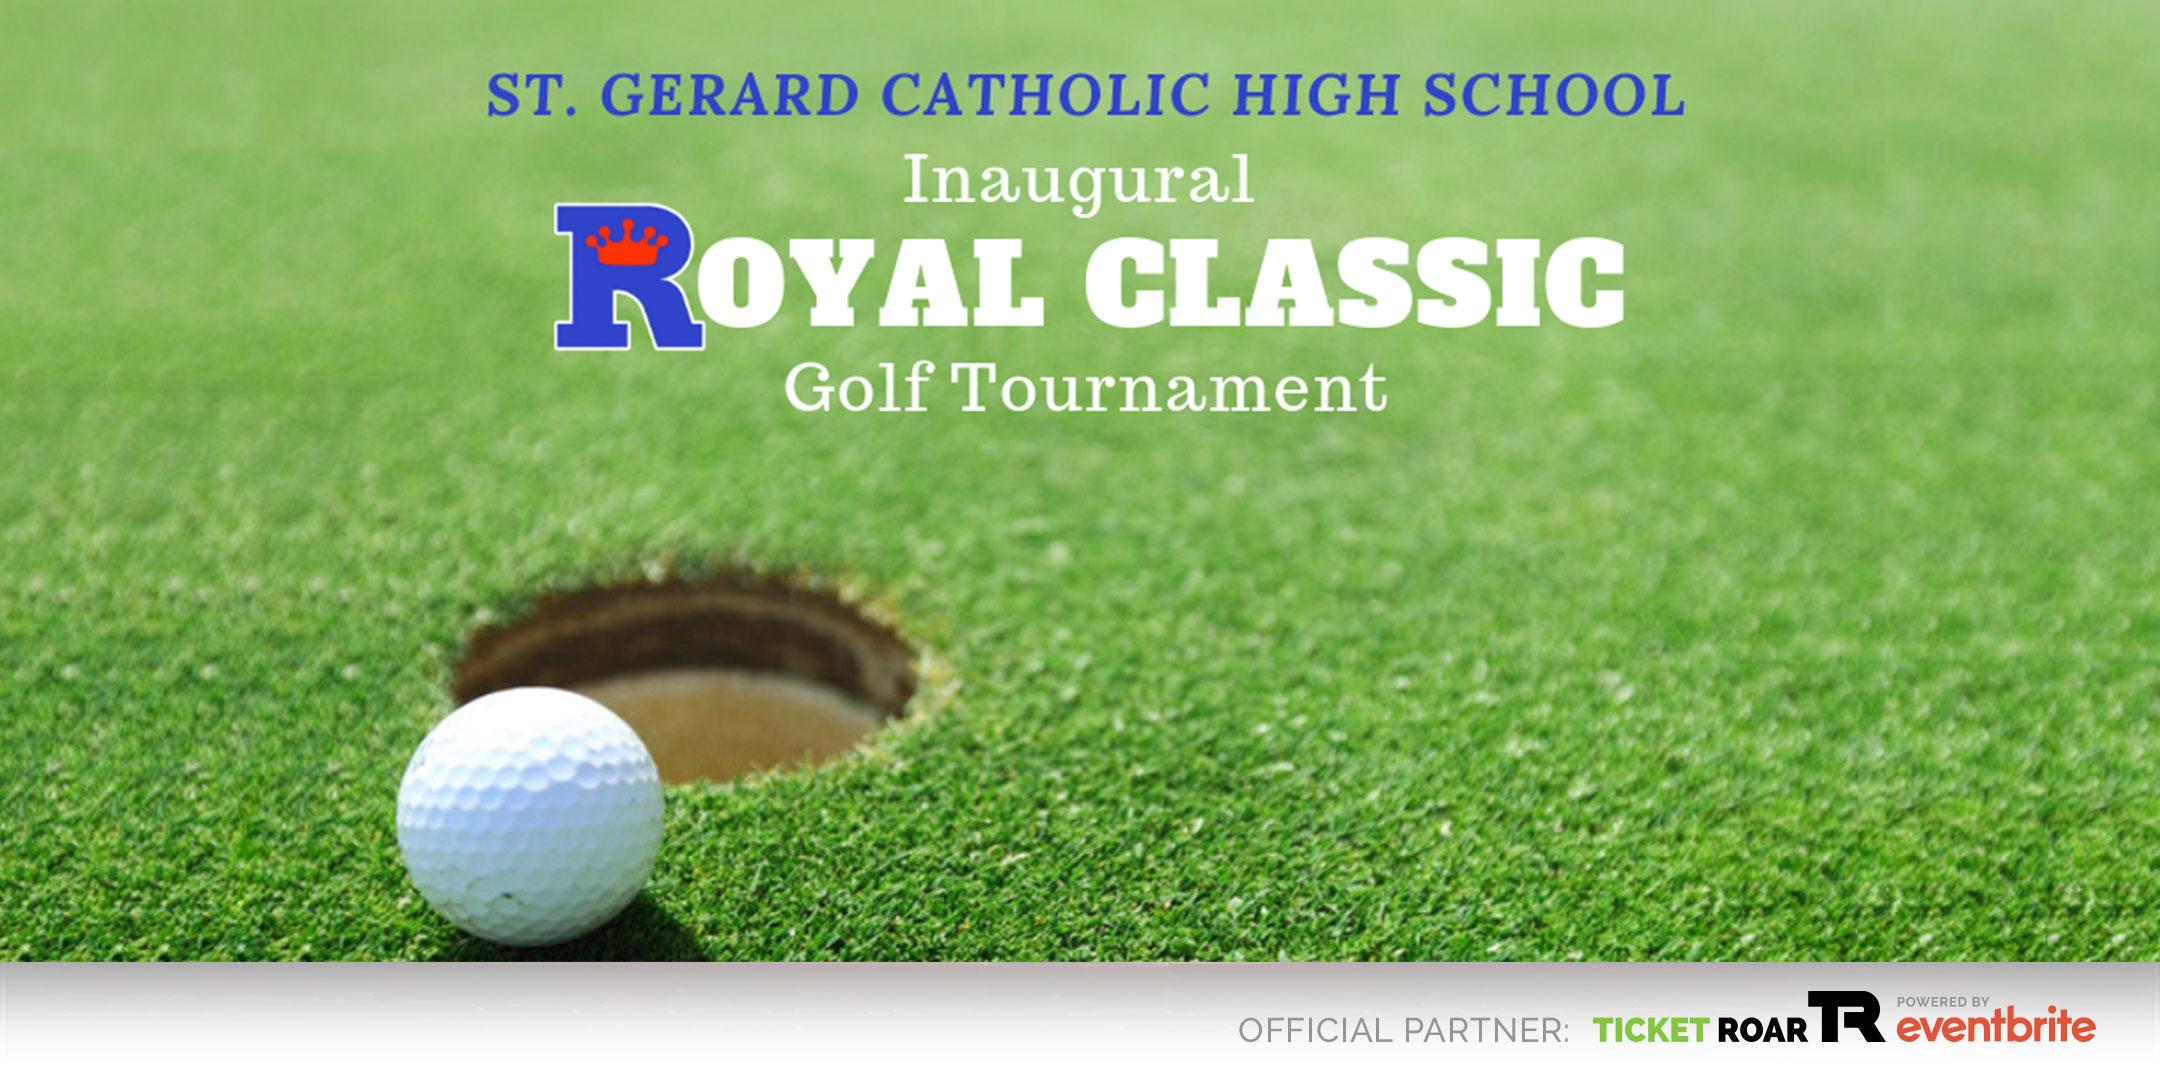 St. Gerard Catholic Inaugural Royal Classic Golf Tournament